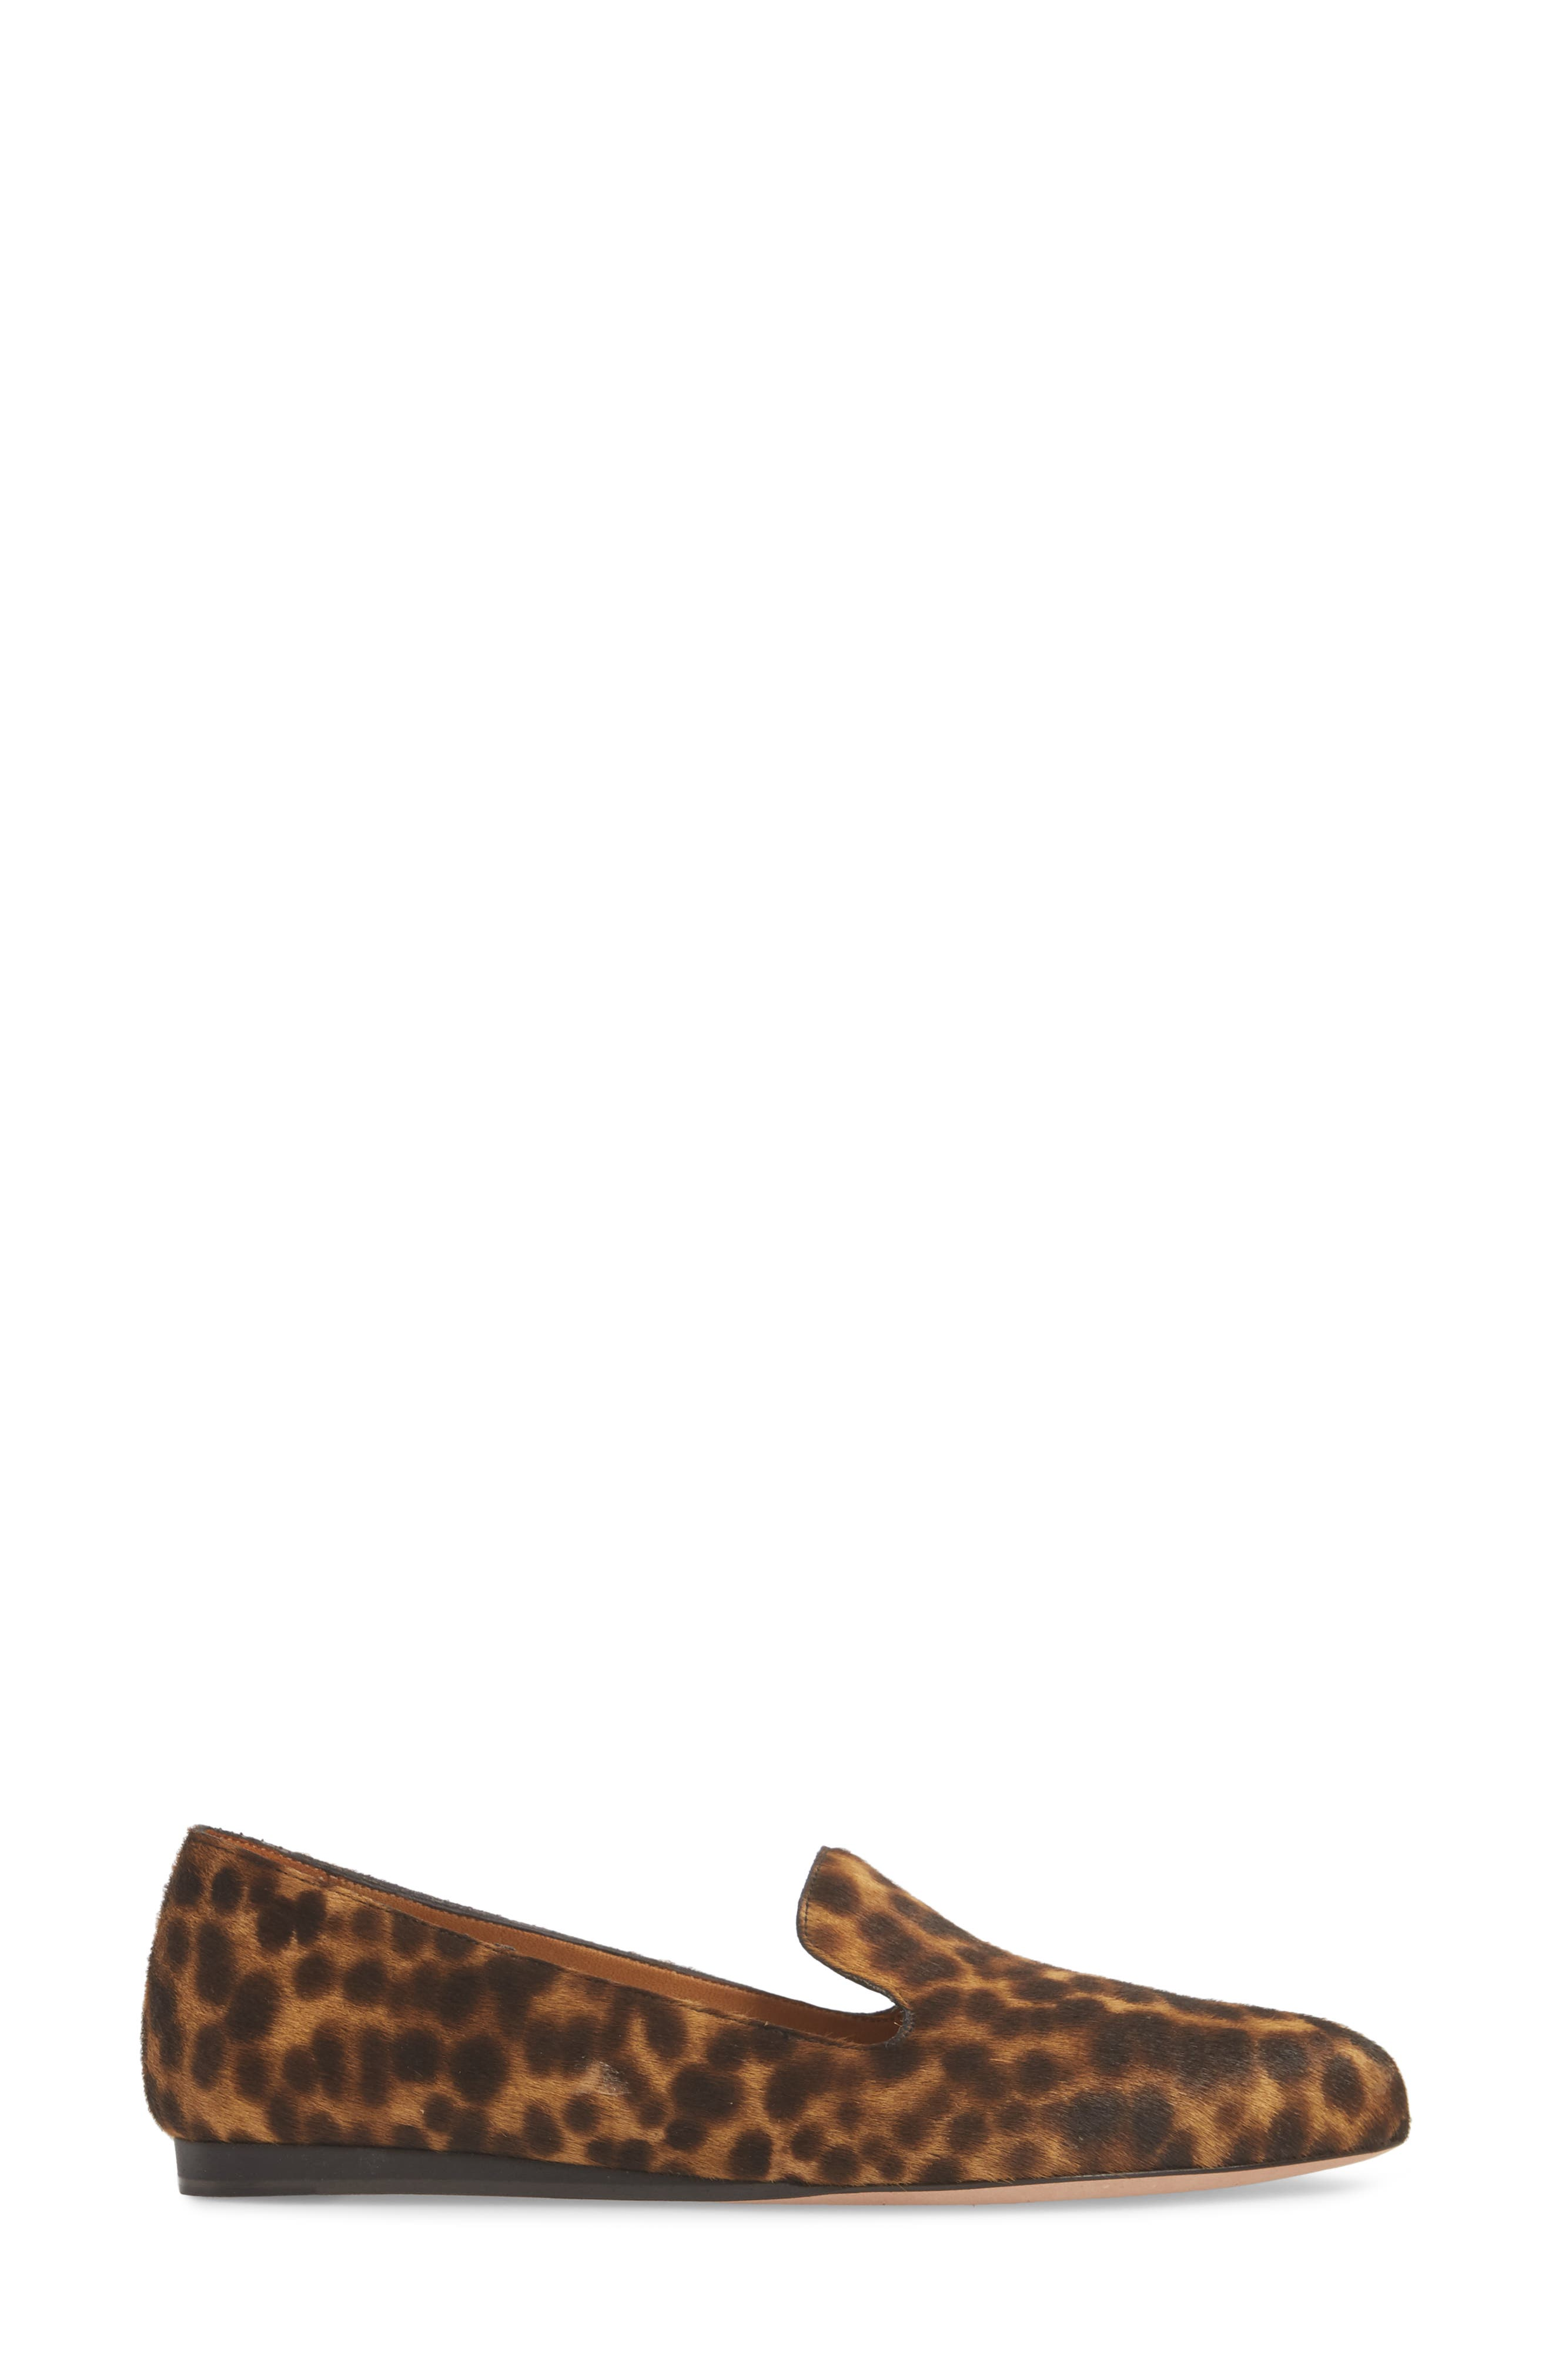 Griffin Genuine Calf Hair Loafer,                             Alternate thumbnail 3, color,                             LEOPARD